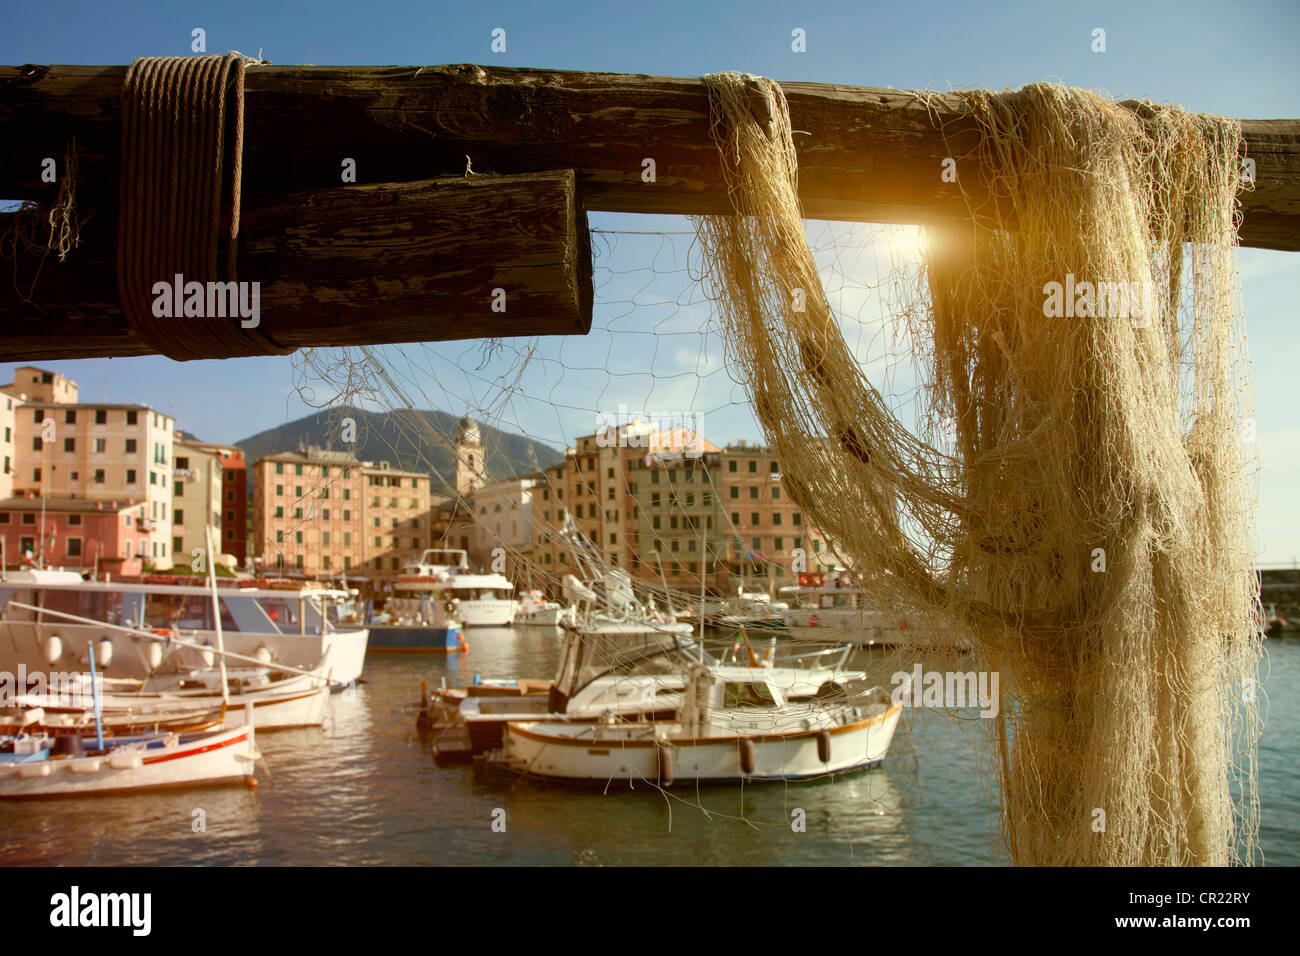 Netting hanging on rail at pier - Stock Image